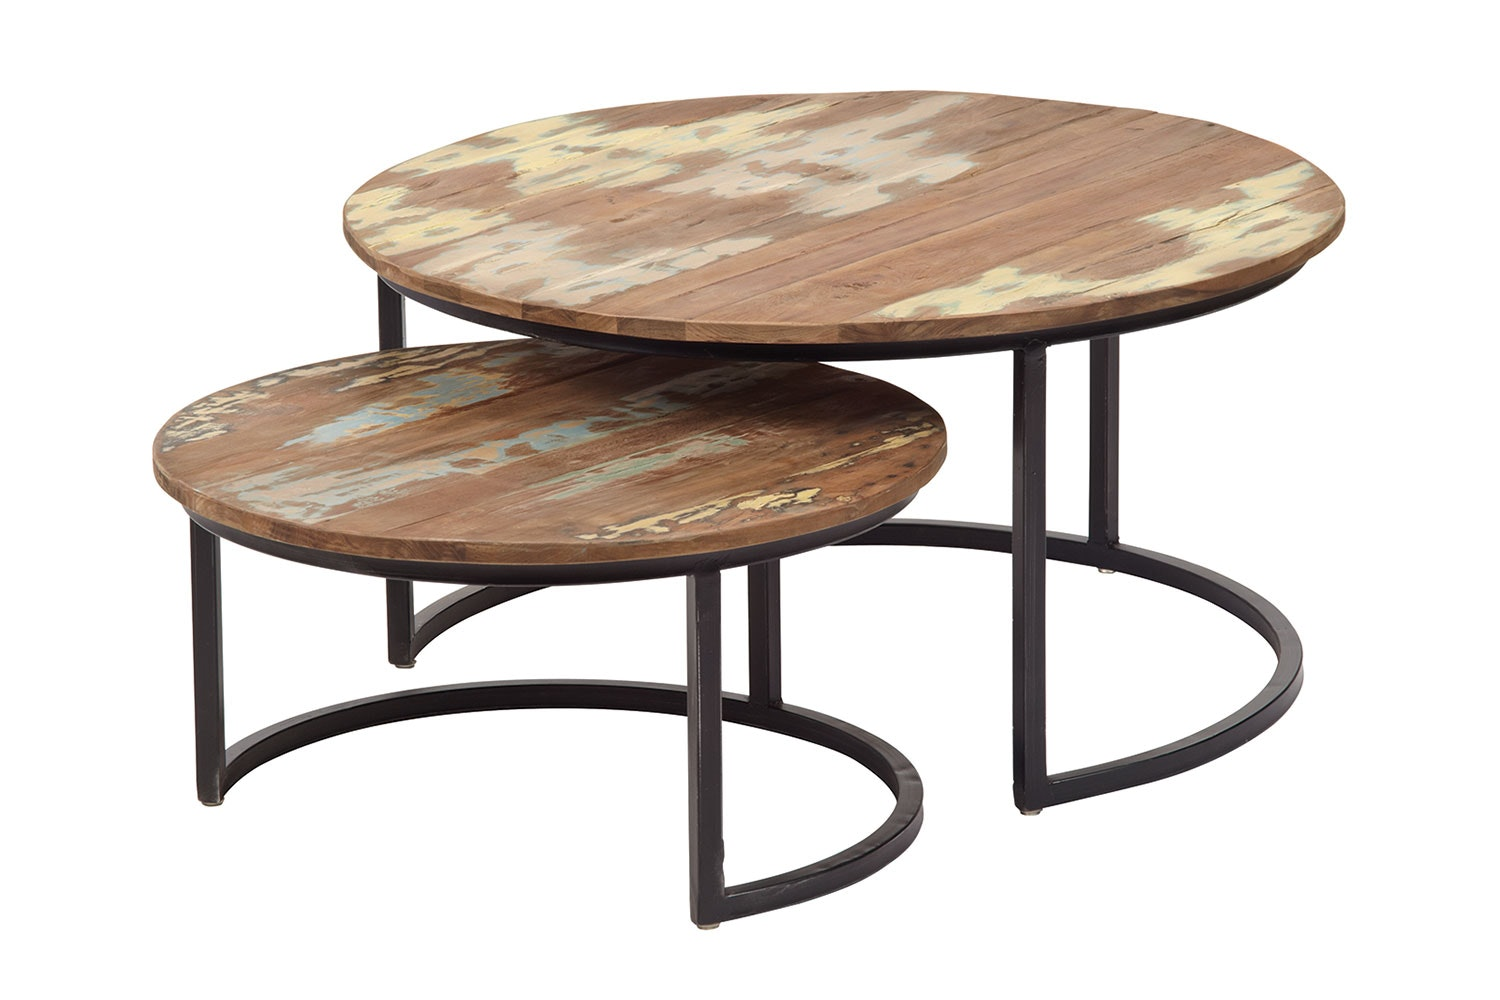 Solo Set of 2 Round Coffee Tables by D-Bodhi Collection